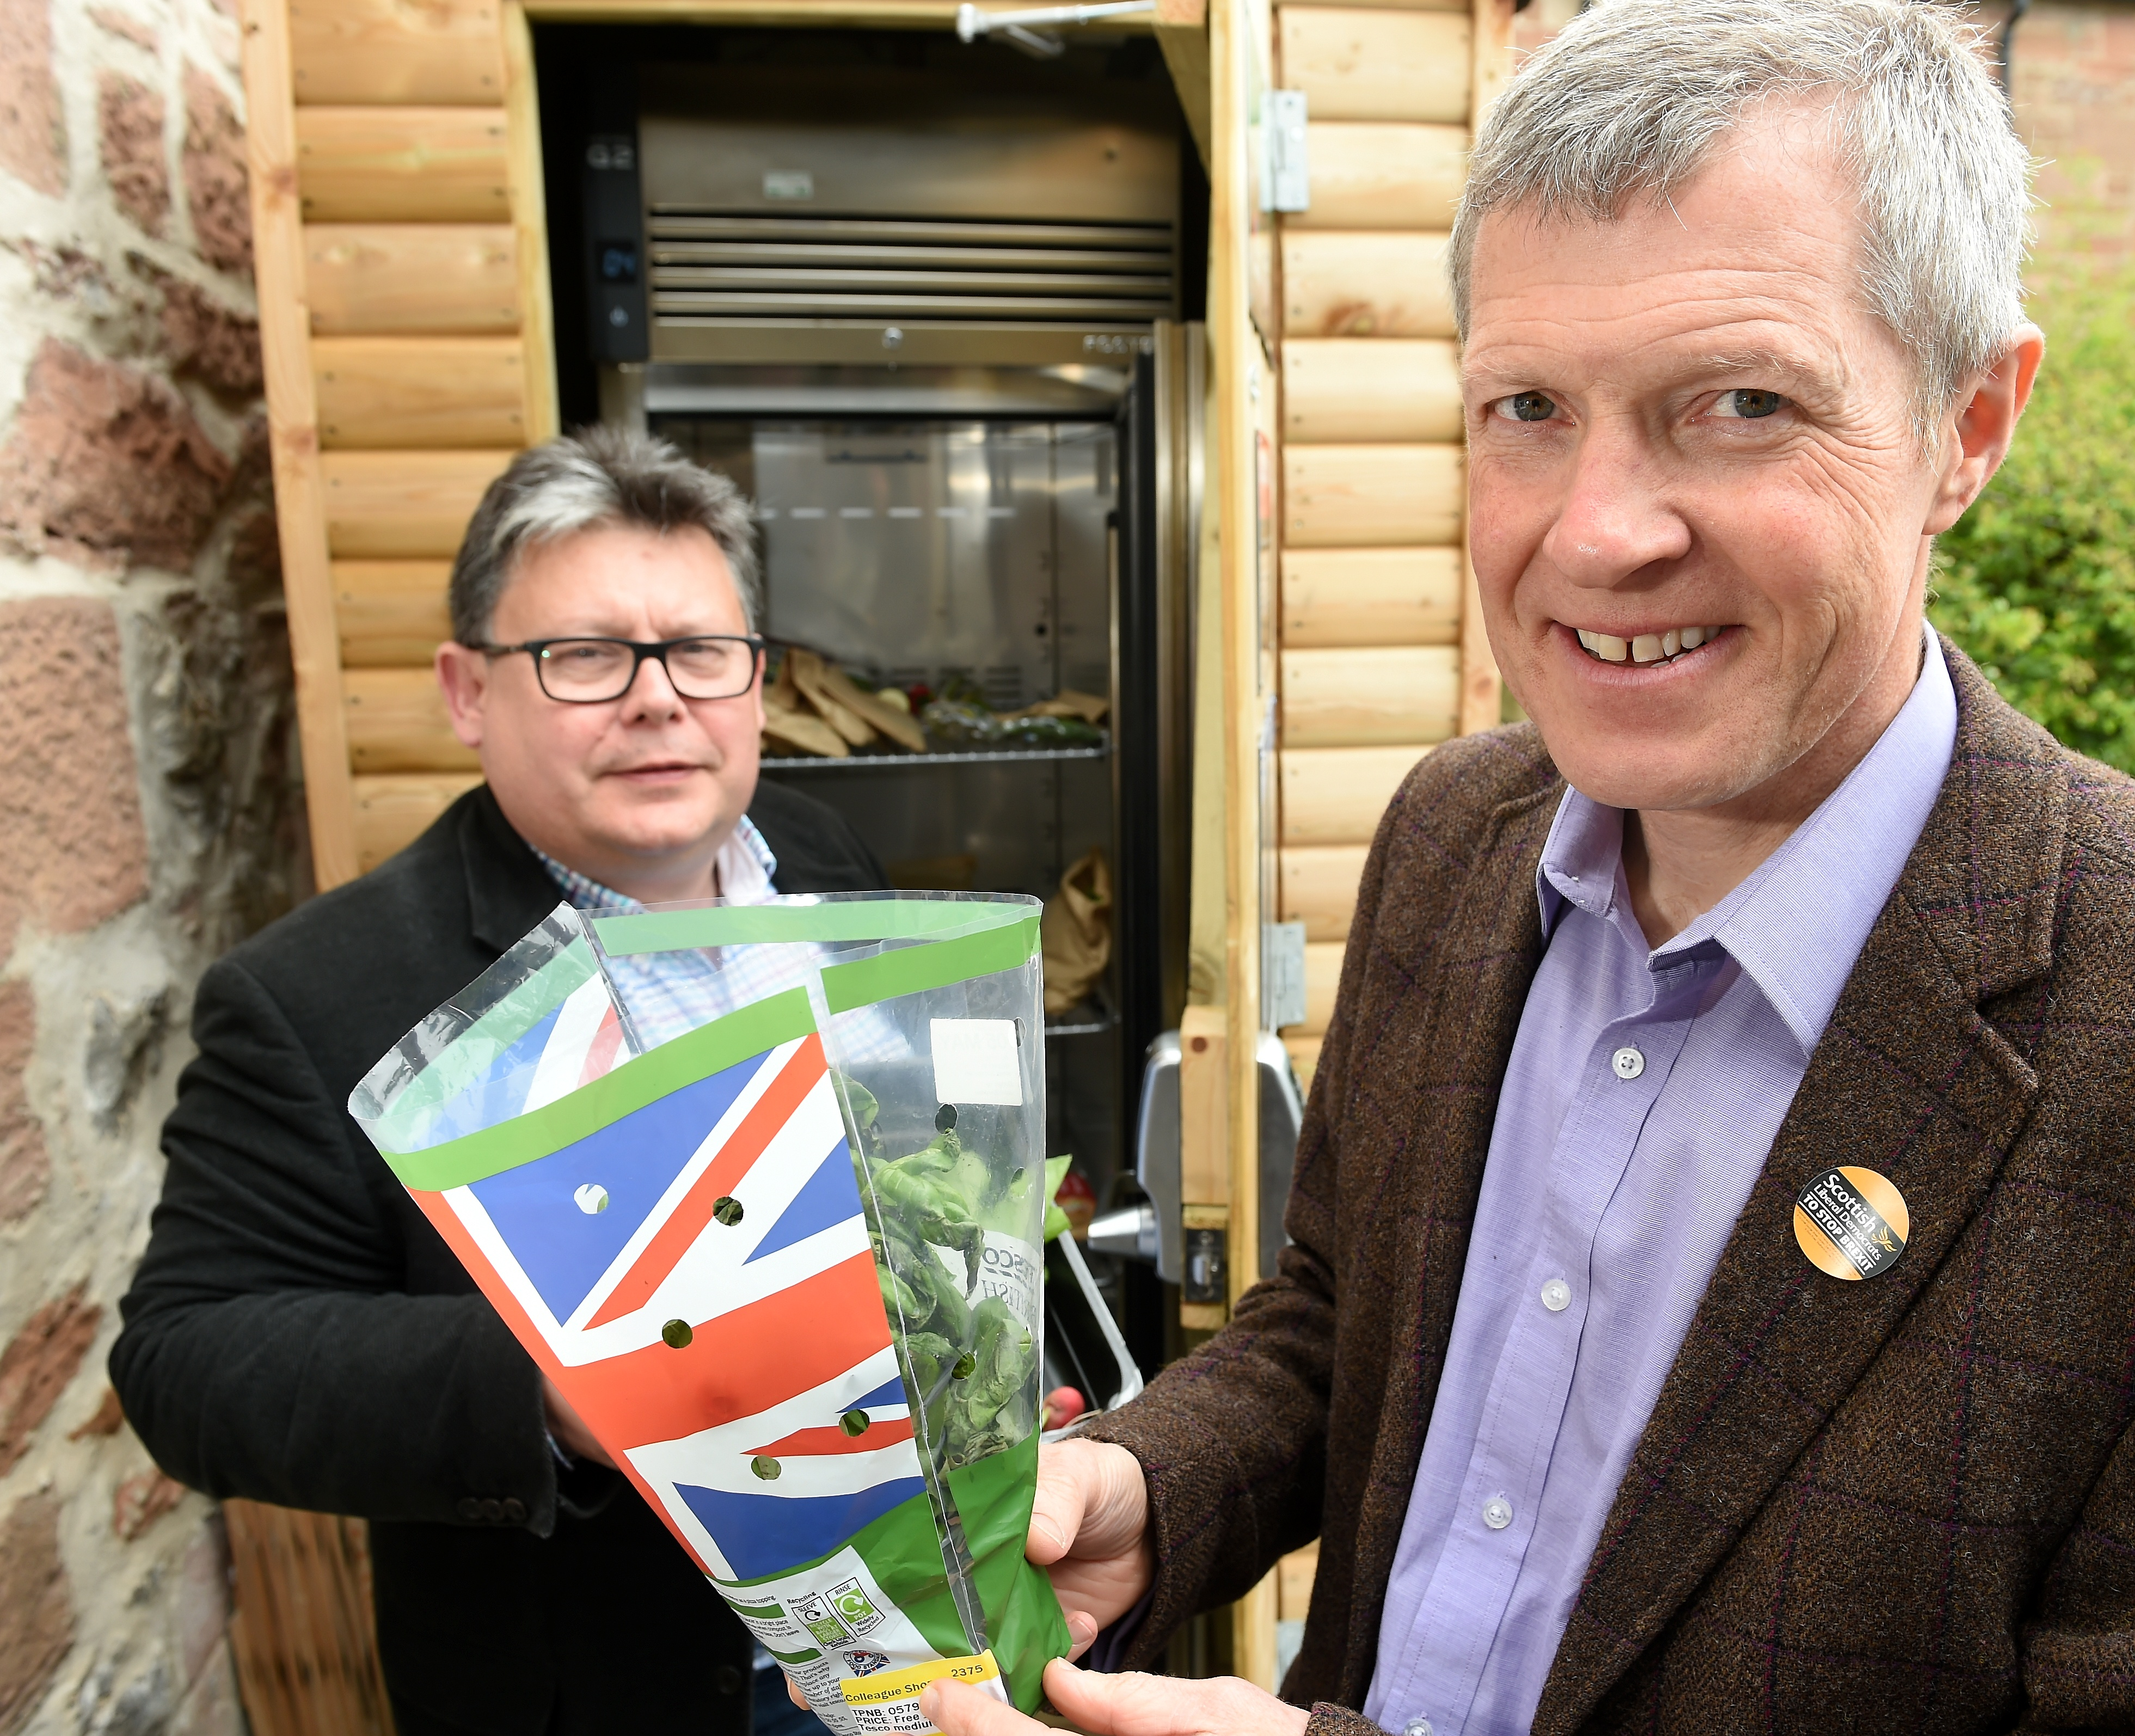 Craig Harrow and Willie Rennie of the Lib Dems